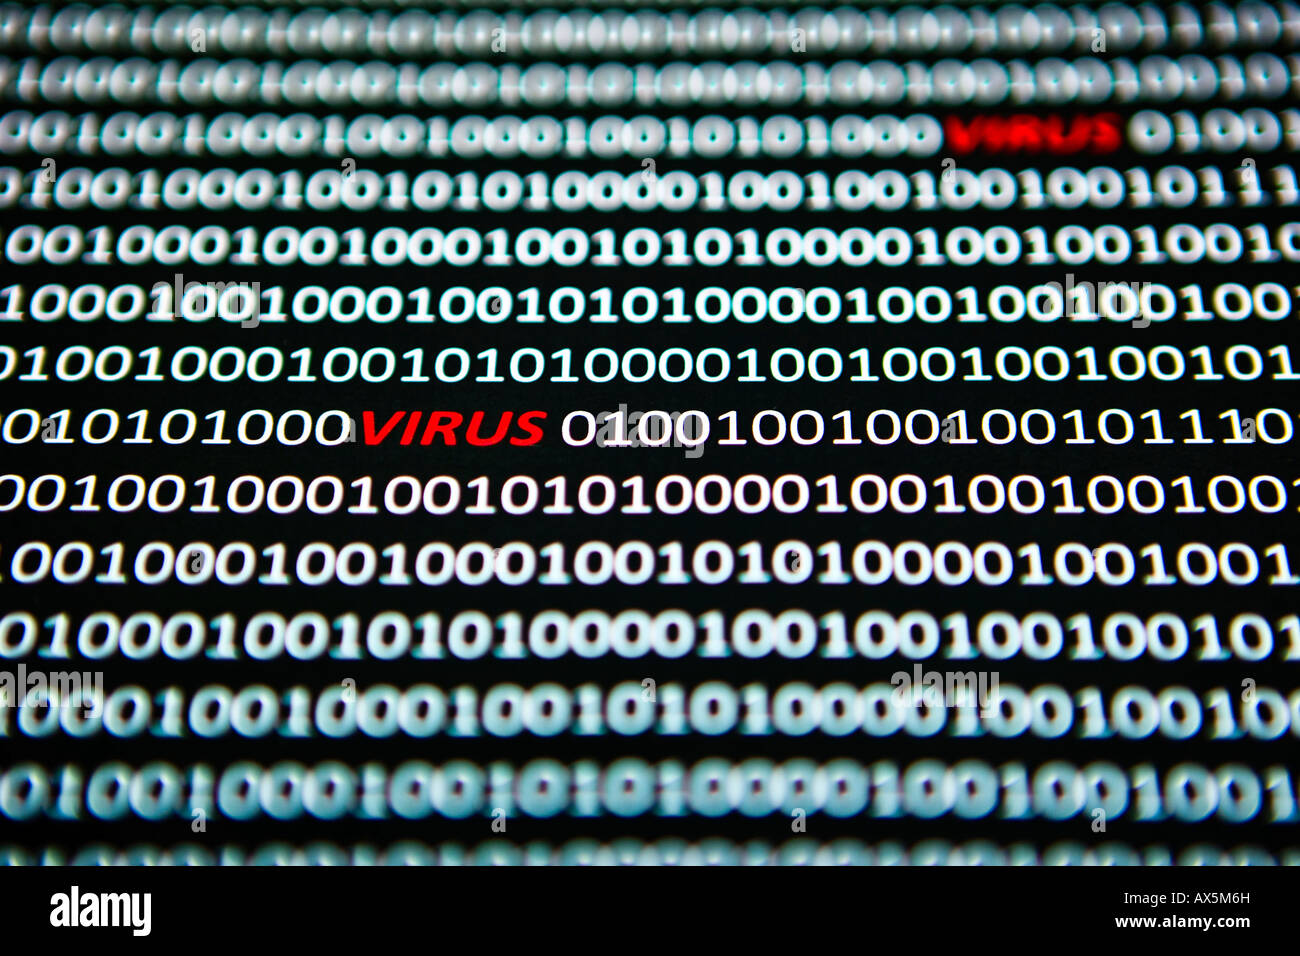 Computer virus, 'virus' spelled out in red between bit coding in a computer data stream - Stock Image